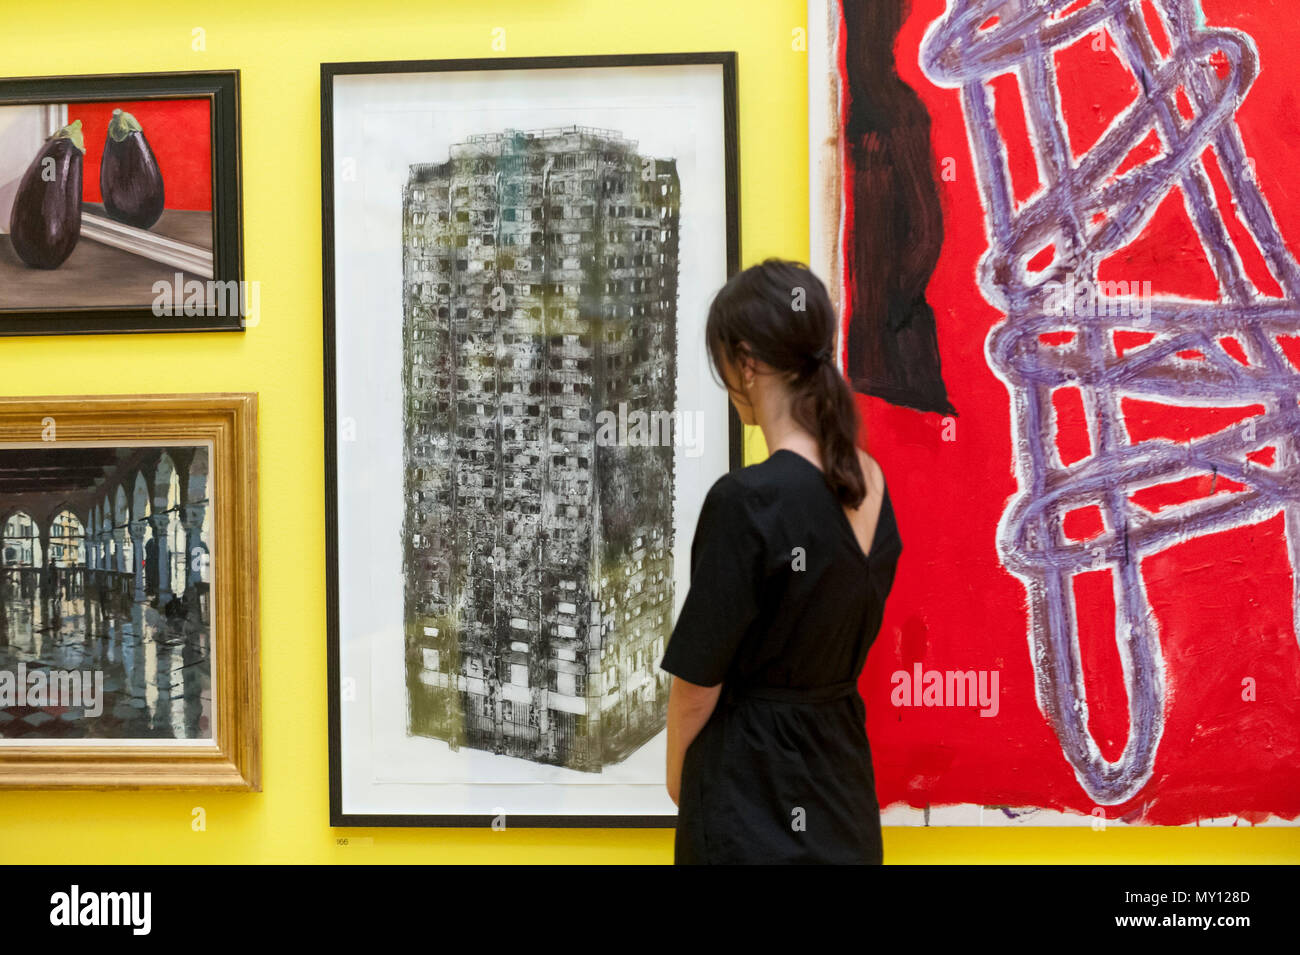 London, UK.  5 June 2018. A staff member views (C) 'Five Grand' by Luke Wade at the preview of the 250th Summer Exhibition at the Royal Academy of Arts in Piccadilly, which has been co-ordinated by Grayson Perry RA this year.  Running concurrently, is The Great Spectacle, featuring highlights from the past 250 years.  Both shows run 12 June to 19 August 2018. Credit: Stephen Chung / Alamy Live News - Stock Image